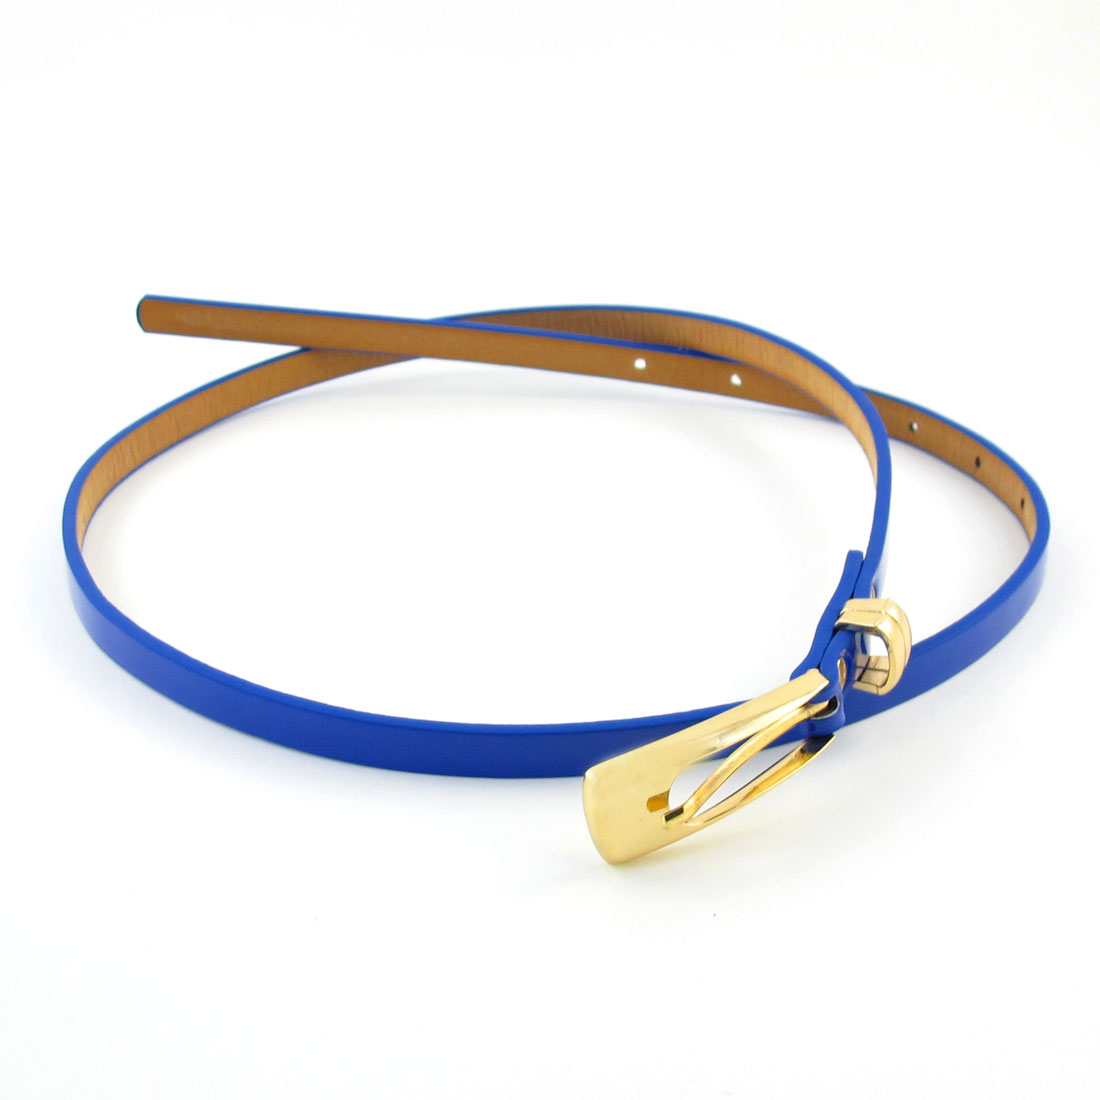 Ladies Blue Faux Leather Metallic Single Prong Buckle Waistbelt